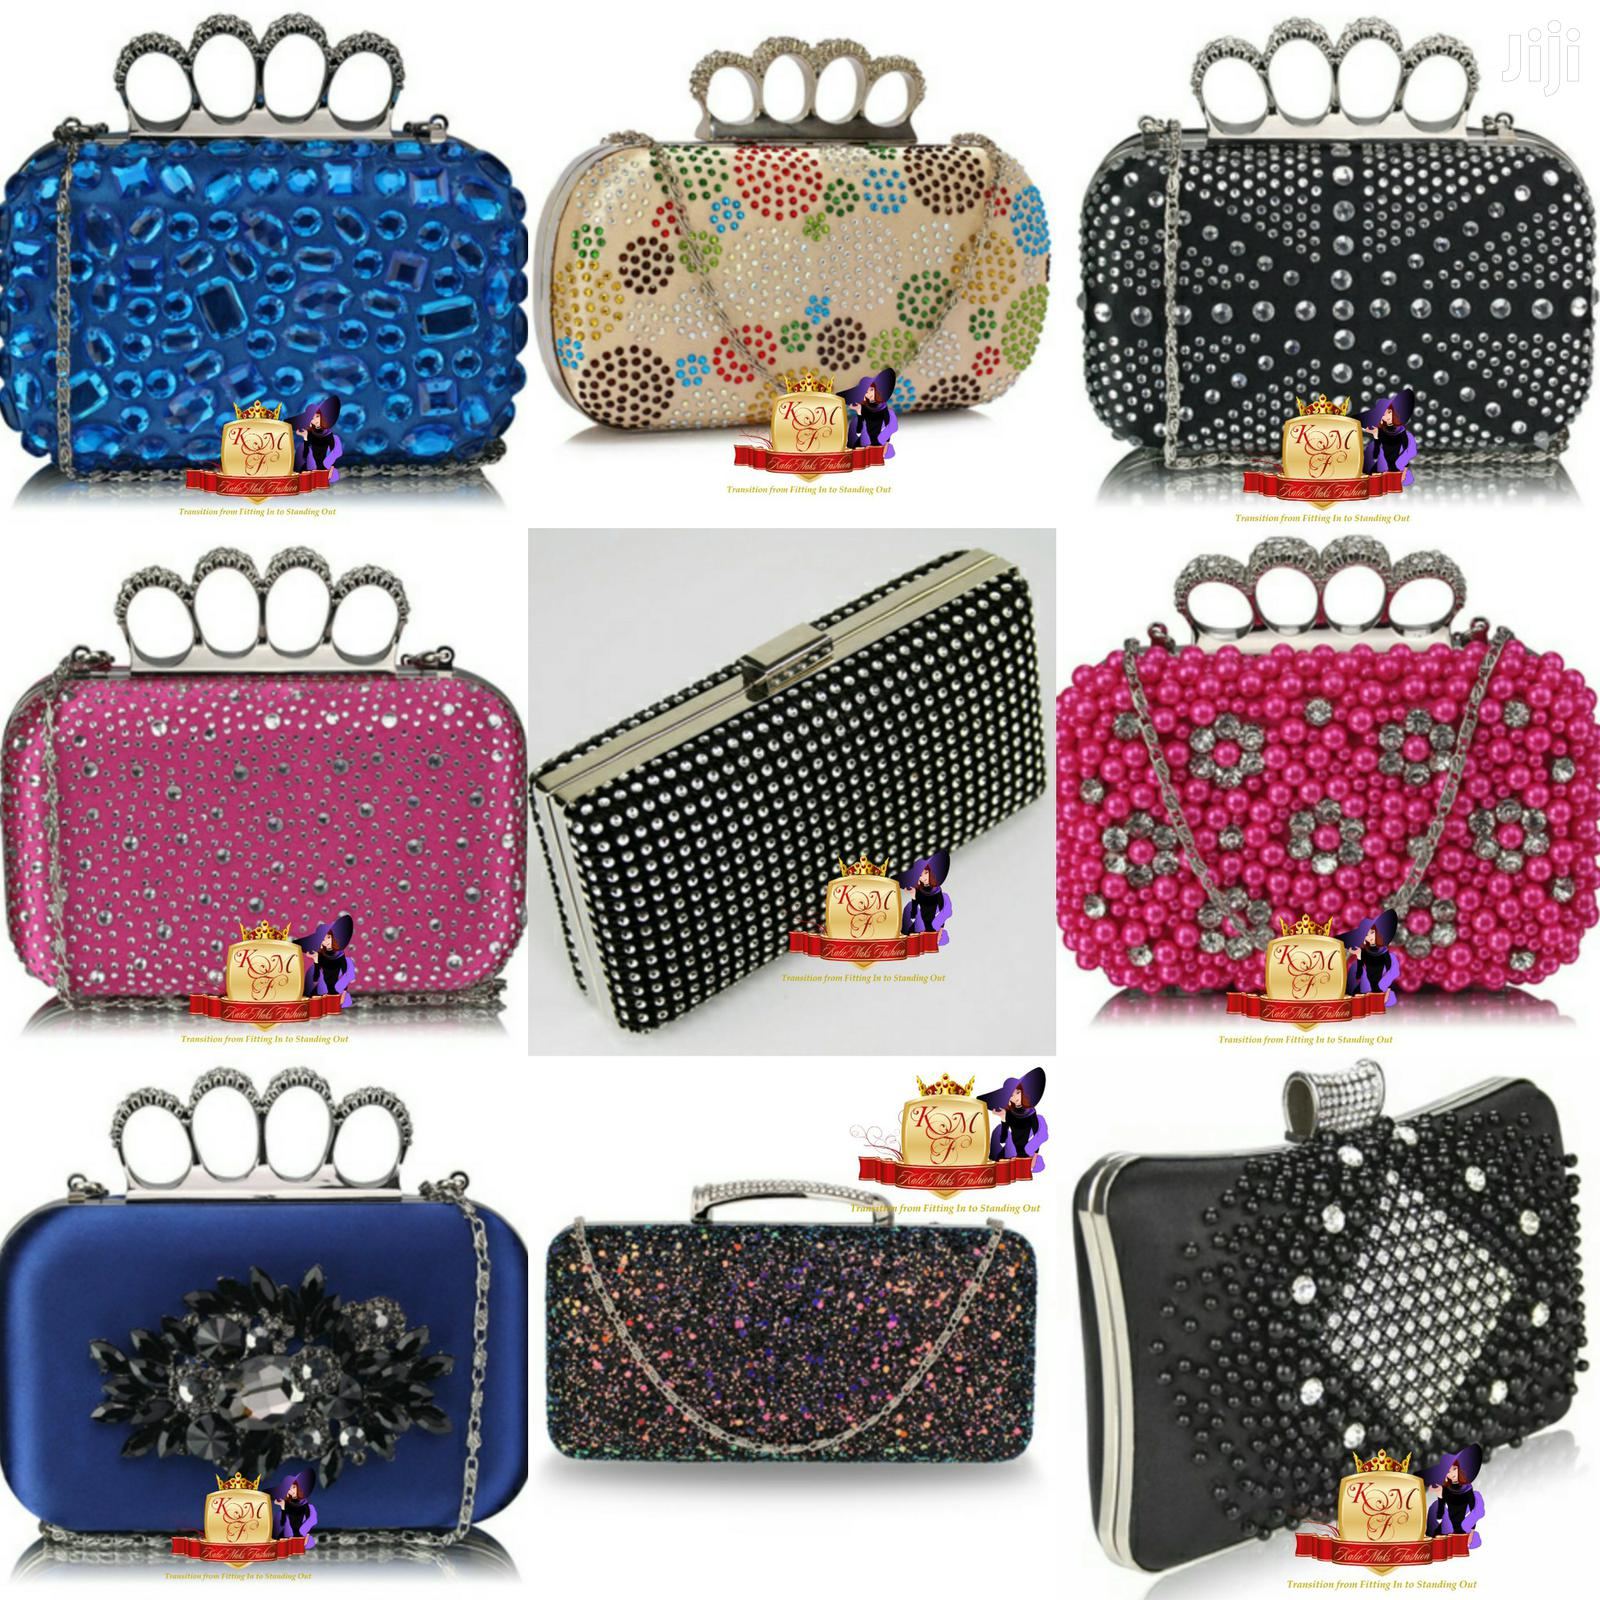 Enctrusted Clutch Bags From UK.